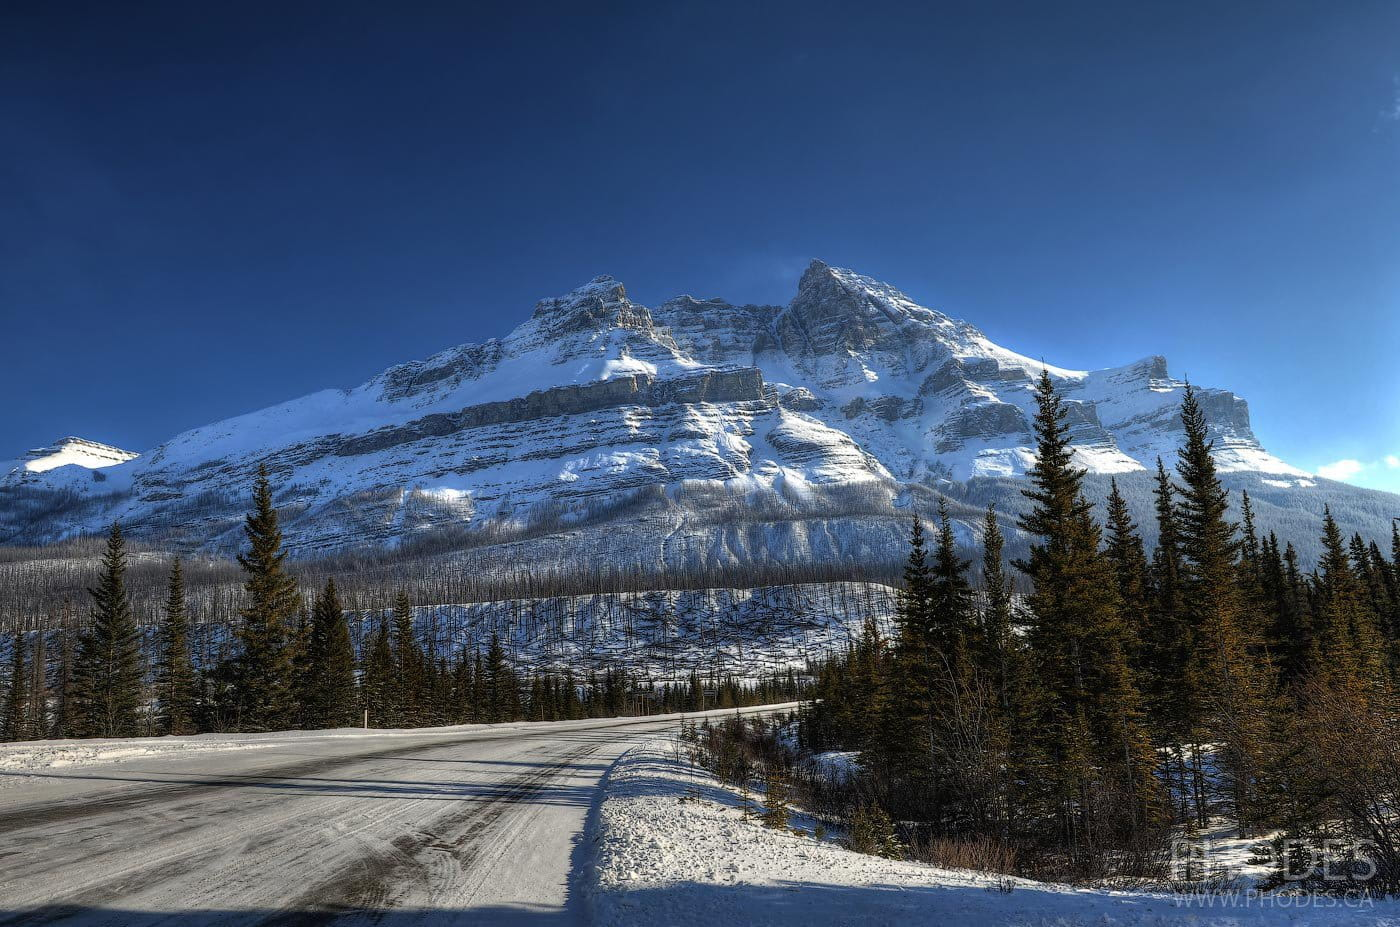 Icefields Parkway in National Park Jasper